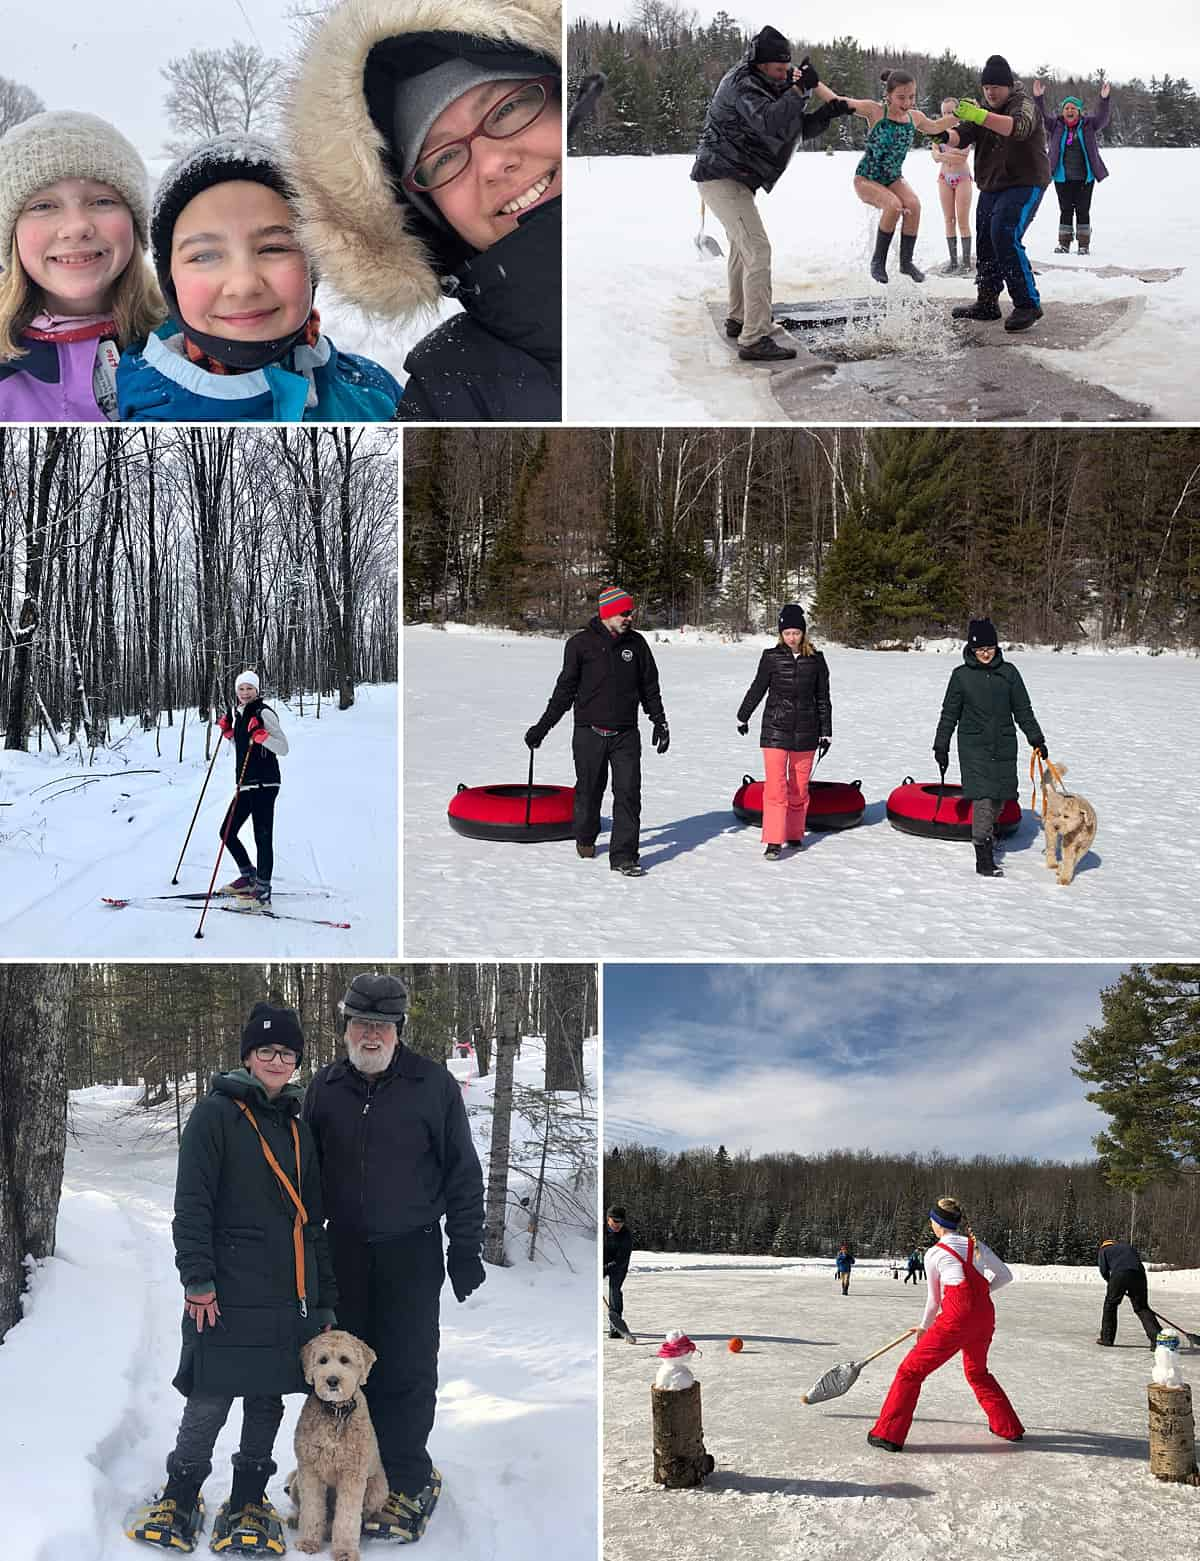 A collage of photos from the Wisconsin restort Afterglow, including skiing, tubing, snowshoeing, and ice broom ball.